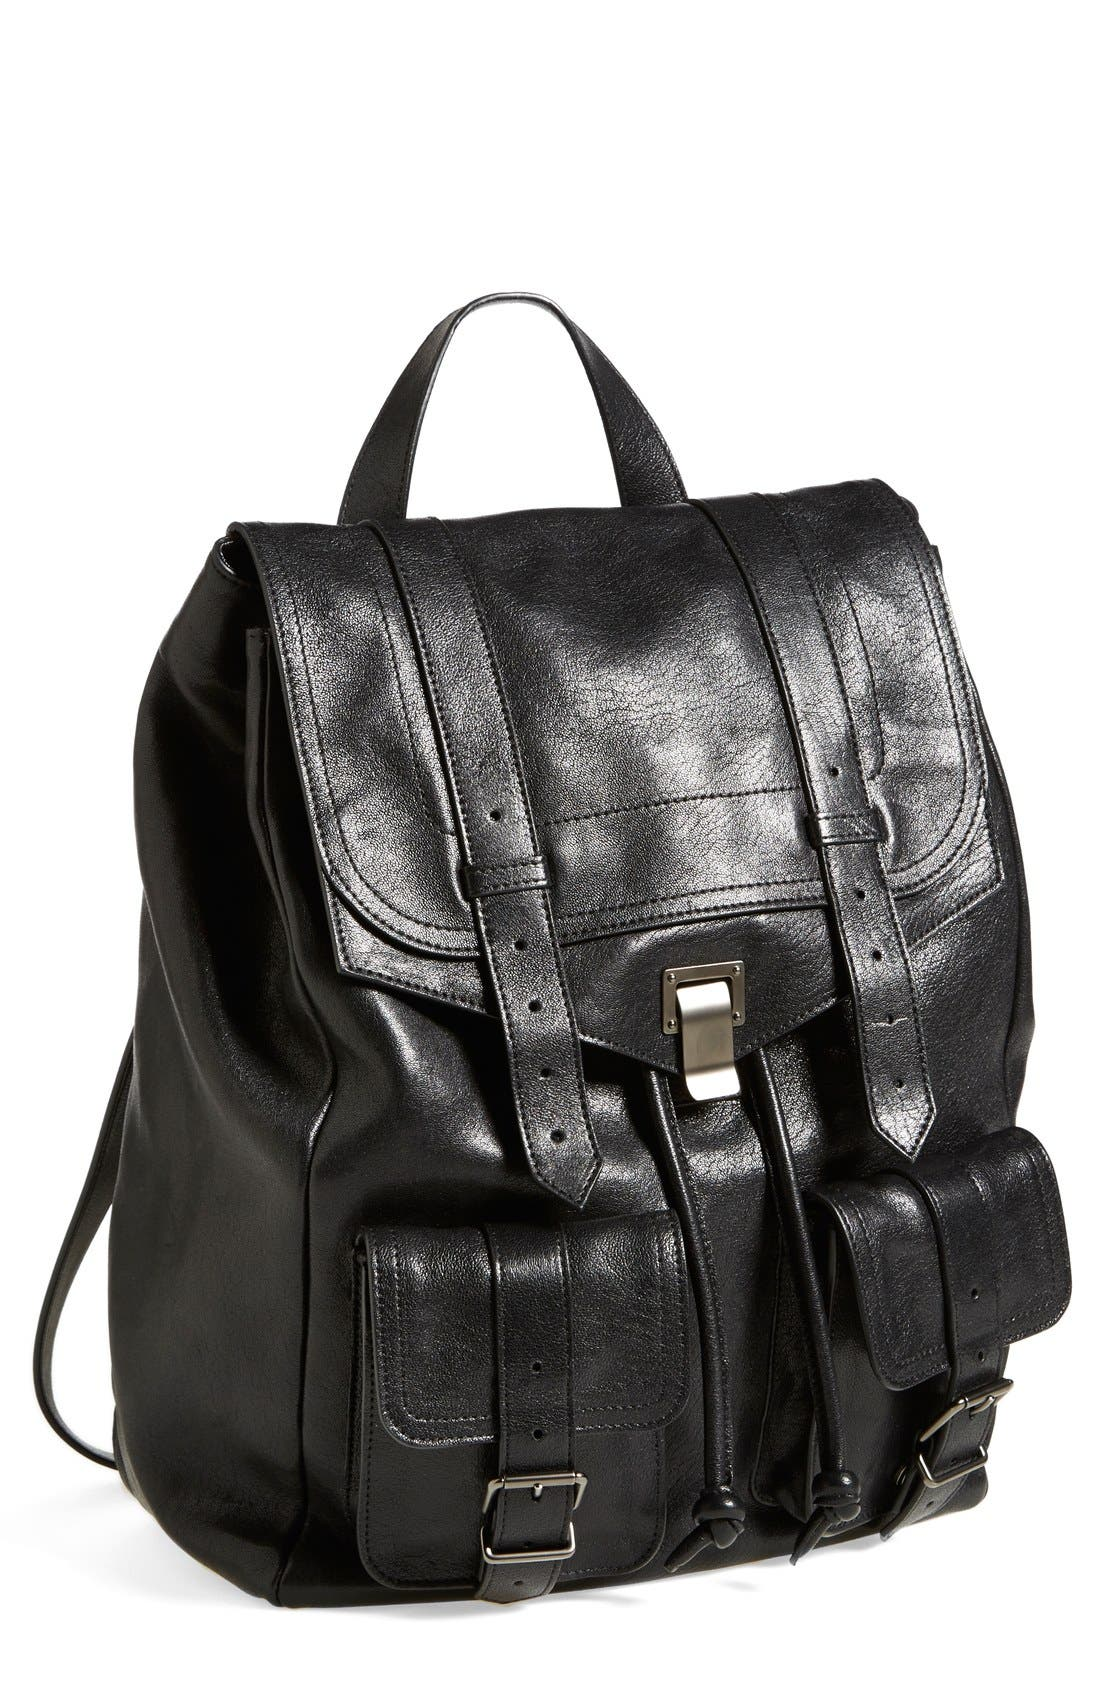 PROENZA SCHOULER, 'PS1' Leather Backpack, Main thumbnail 1, color, 001